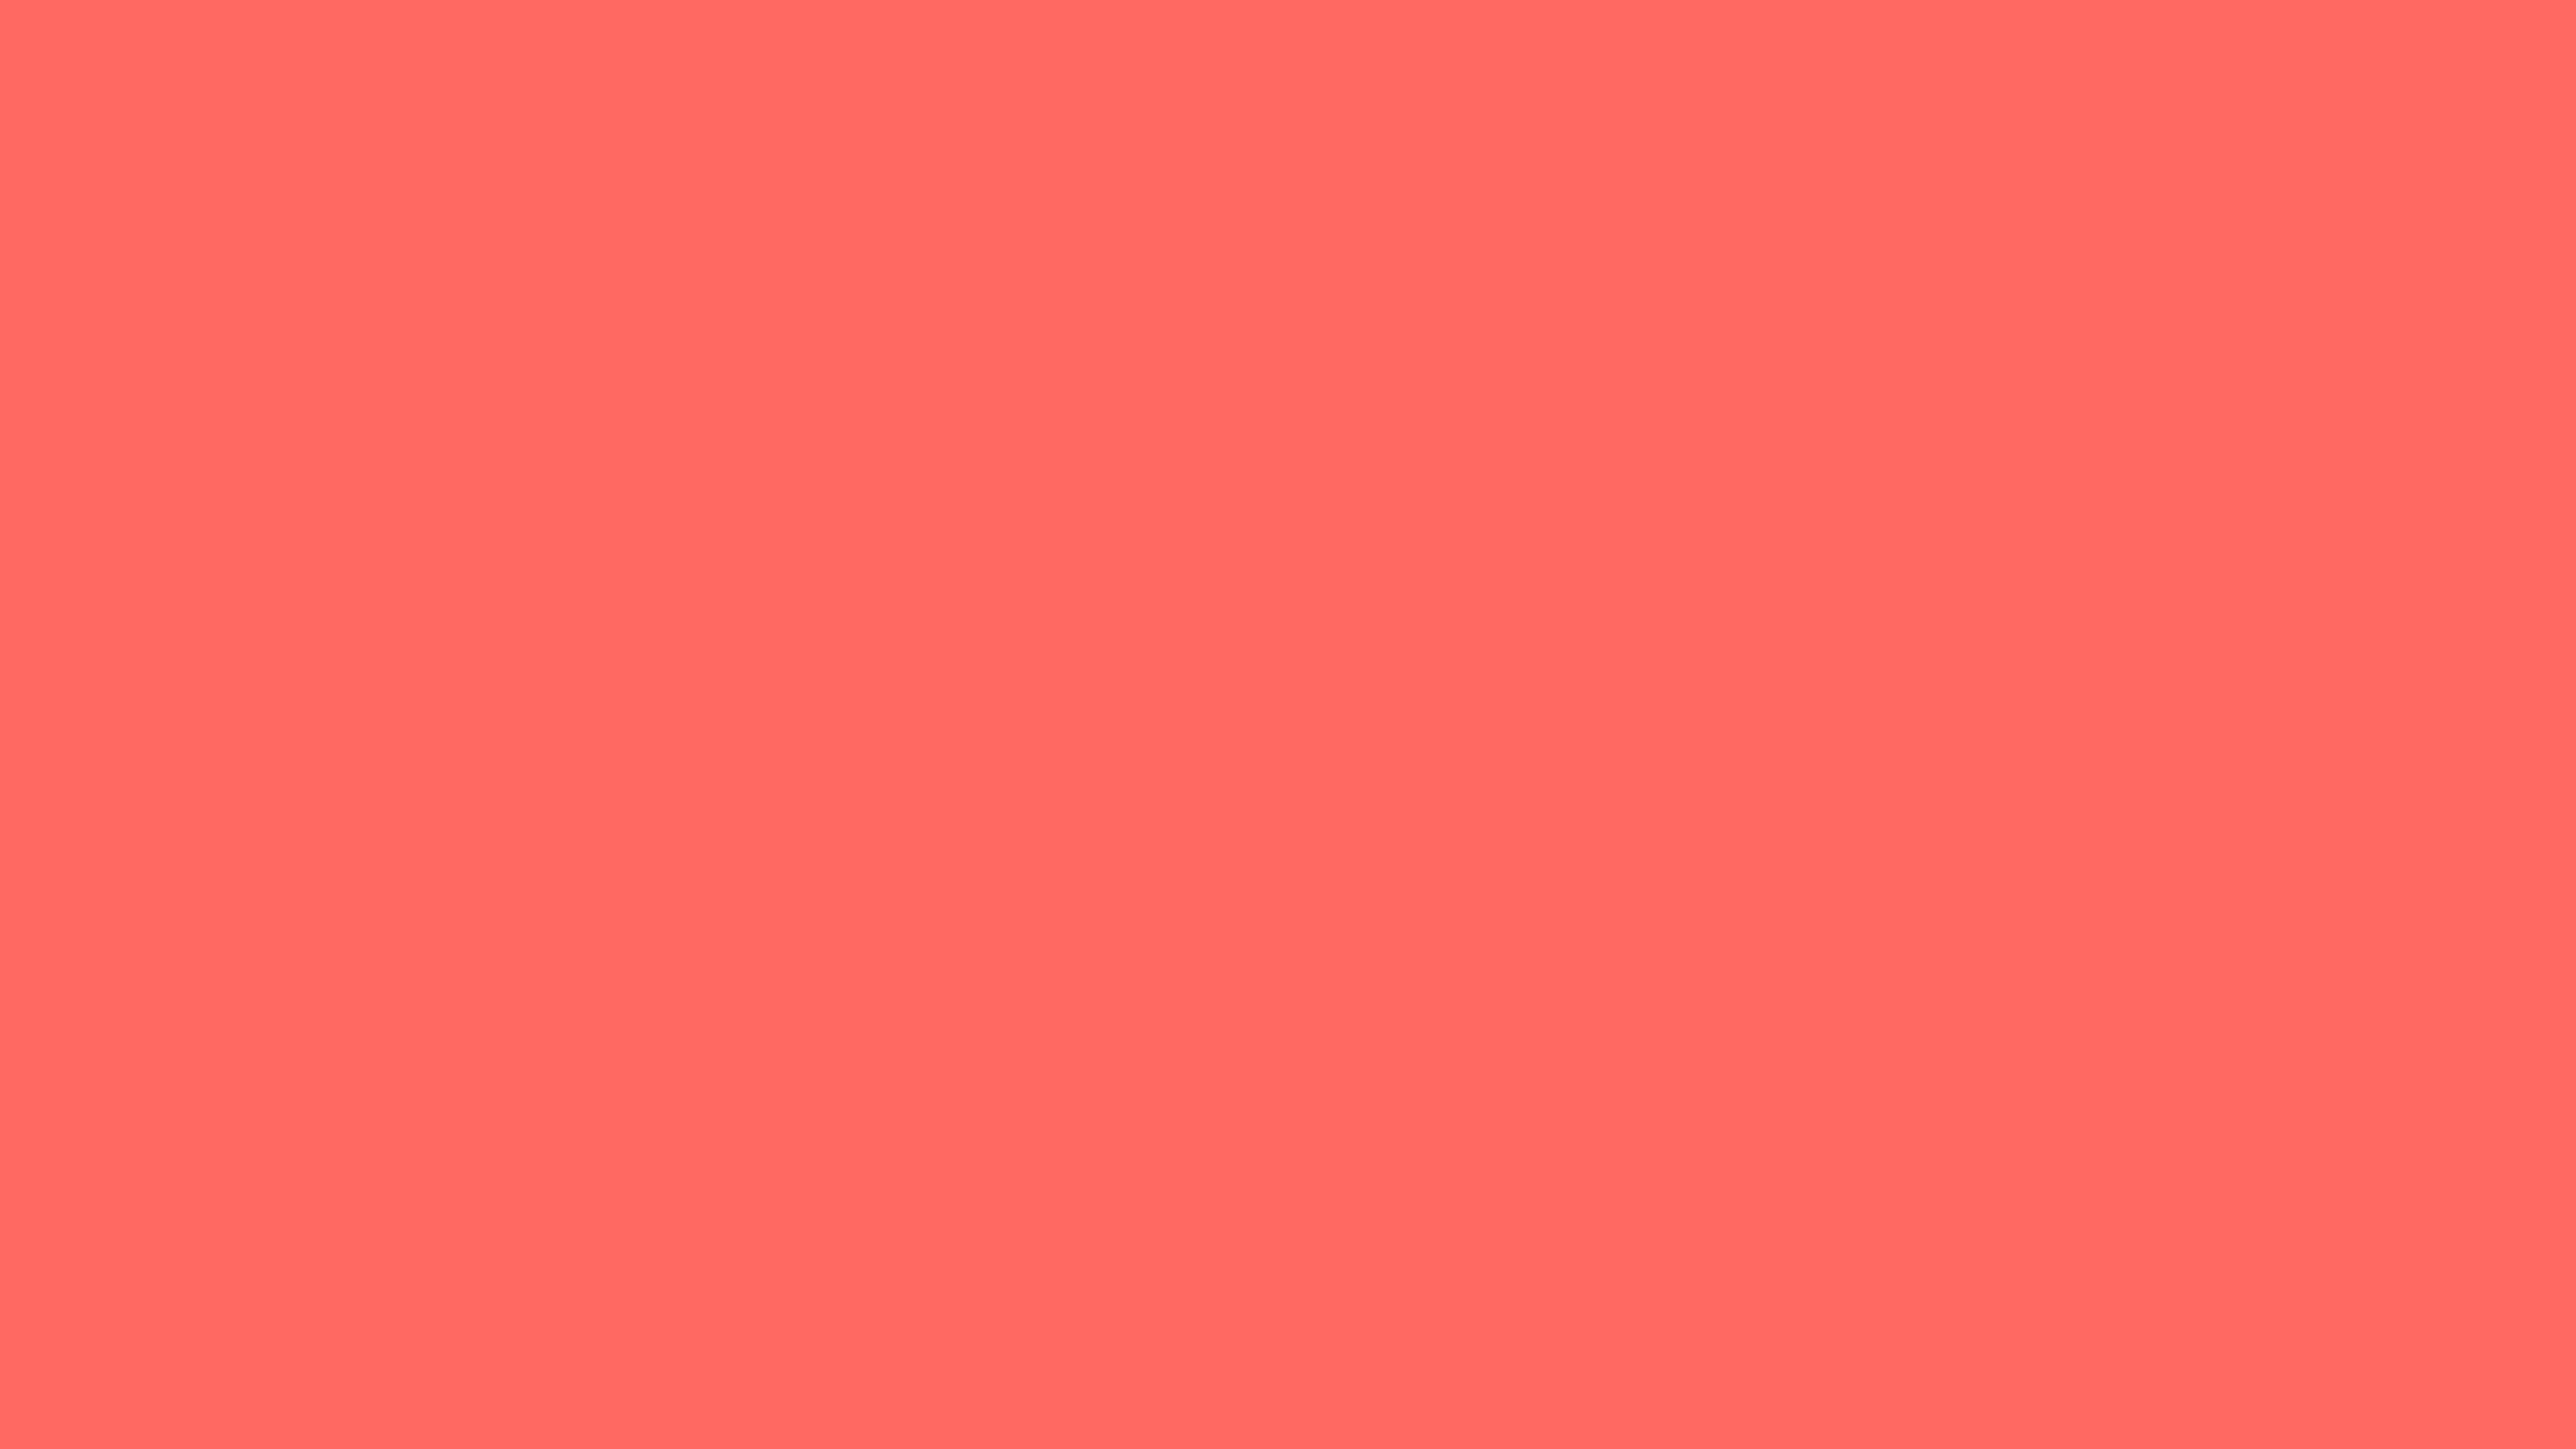 3840x2160 Pastel Red Solid Color Background